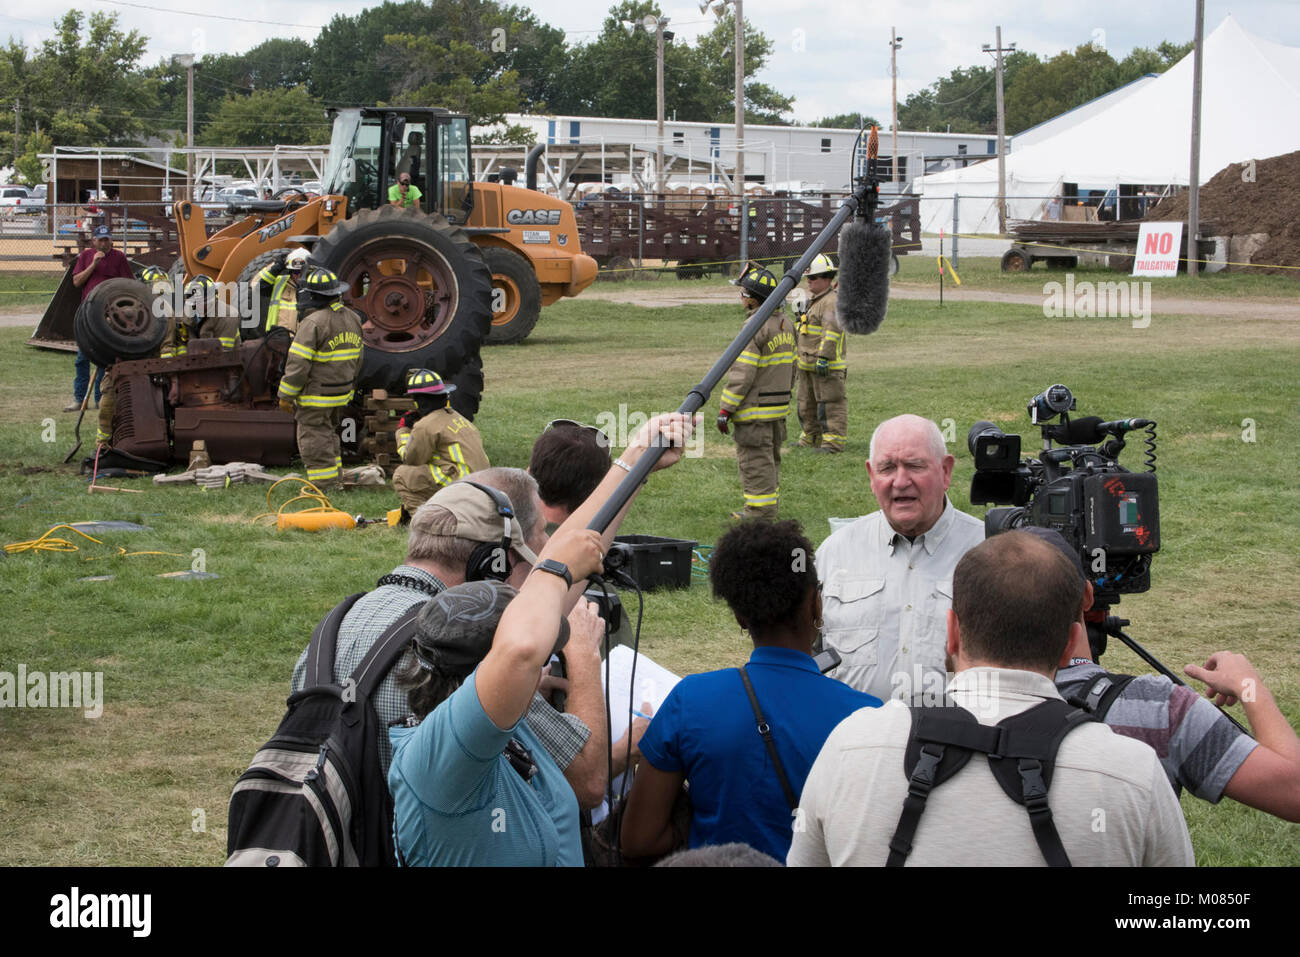 U.S. Department of Agriculture (USDA) Secretary Sonny Perdue and Mrs. Mary Perdue visit the Mississippi Valley Fair, - Stock Image